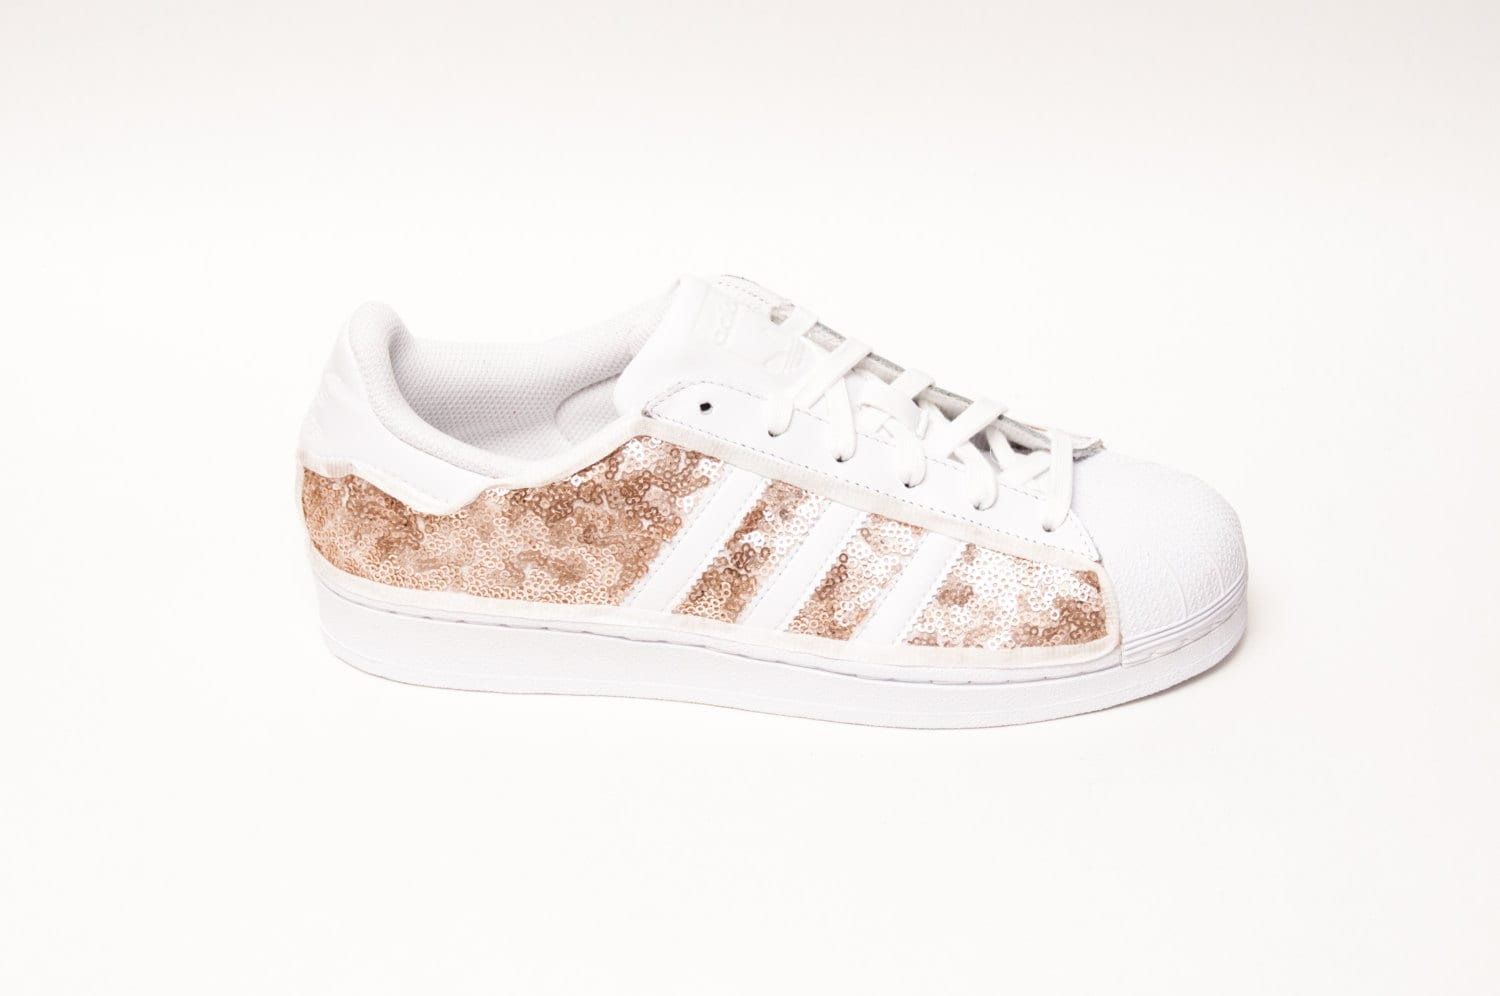 c6a0f82caaccc Tiny Sequin Starlight Champagne Gold Adidas Superstars